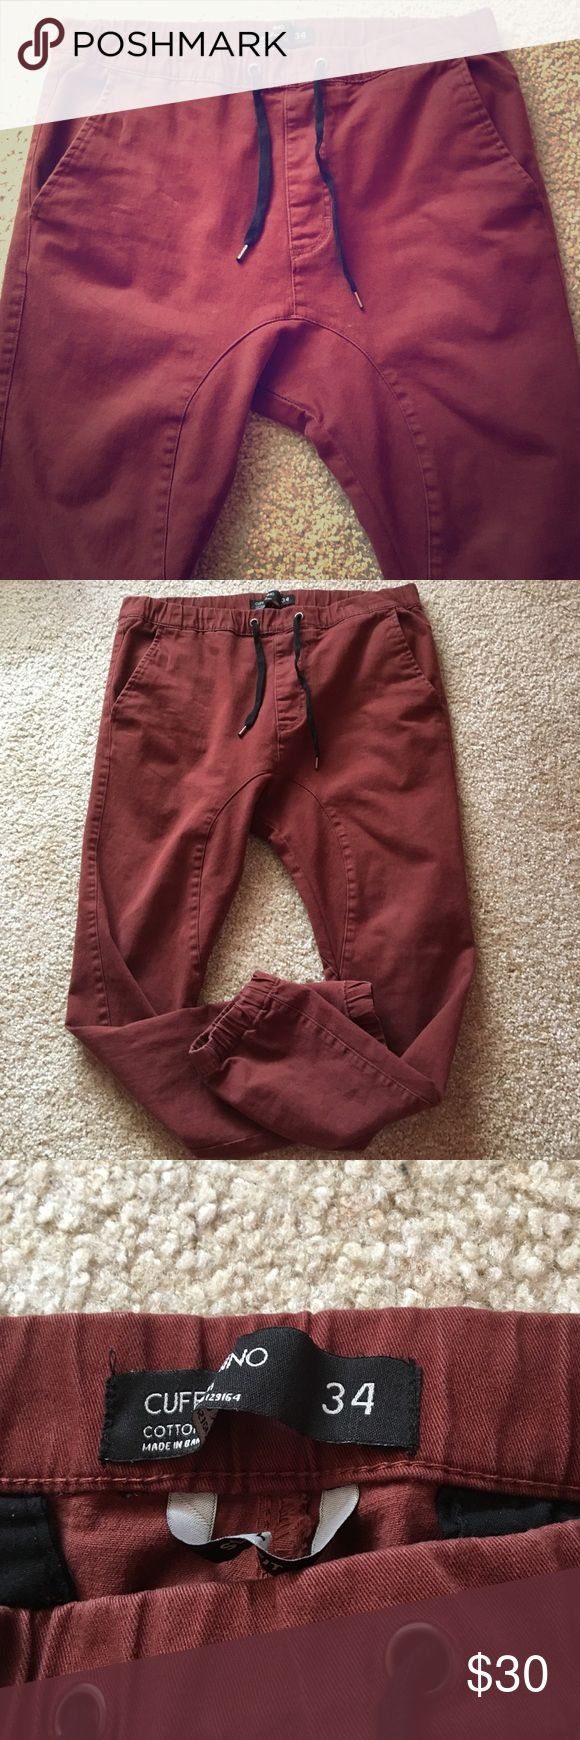 sale men's joggers Men's maroon joggers! Size 34 in waist, slim fit Open to offers! In good condition Cotton On Pants Sweatpants & Joggers